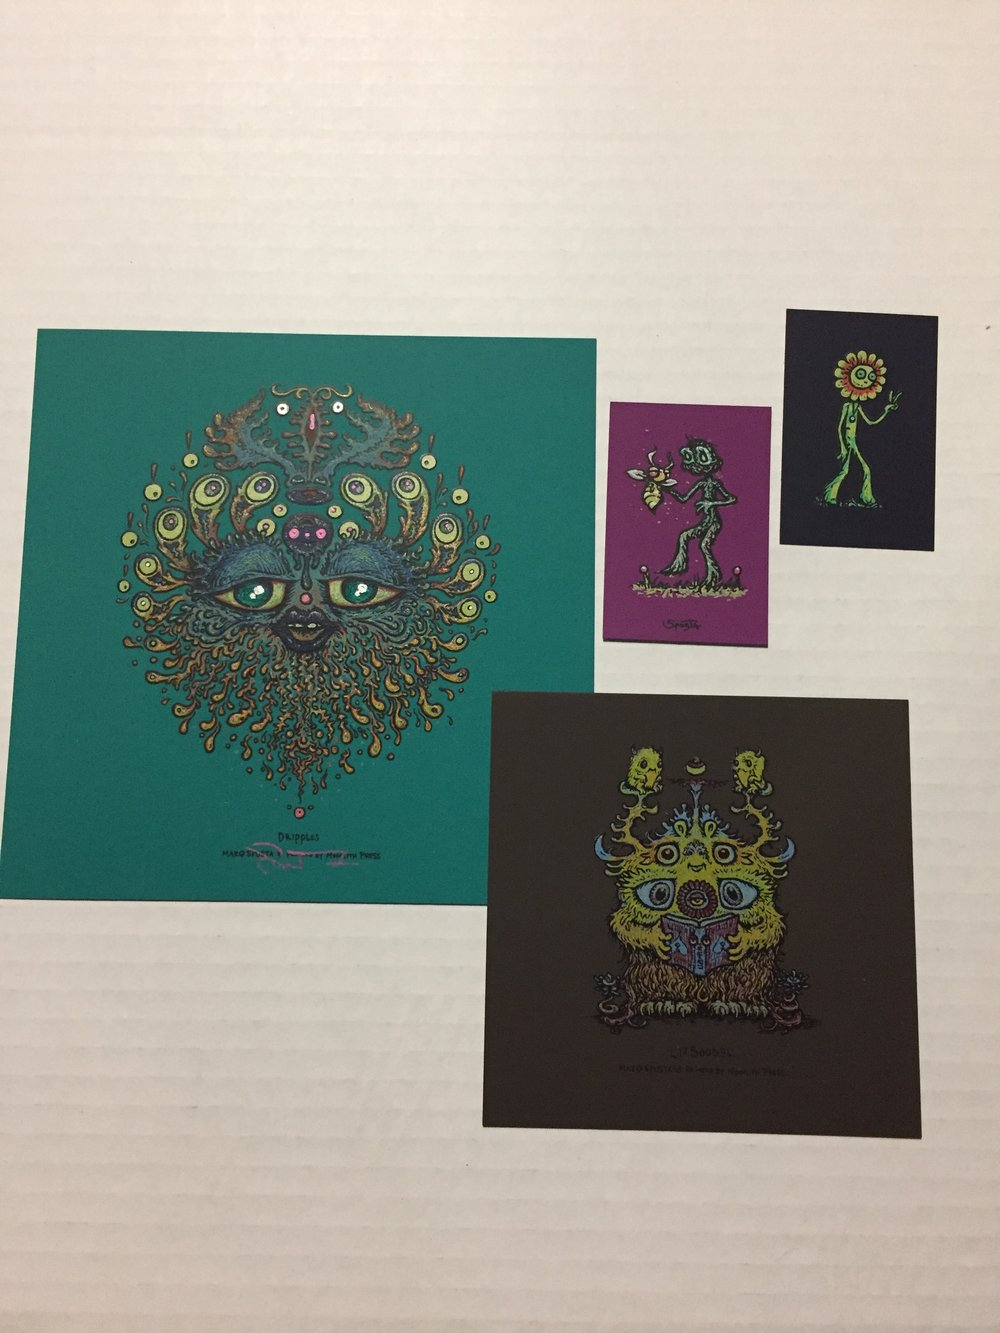 "Lightly Embellished 7"" x7"" Teal Dripples + Brown Rubber Litboogel + minis pictured"